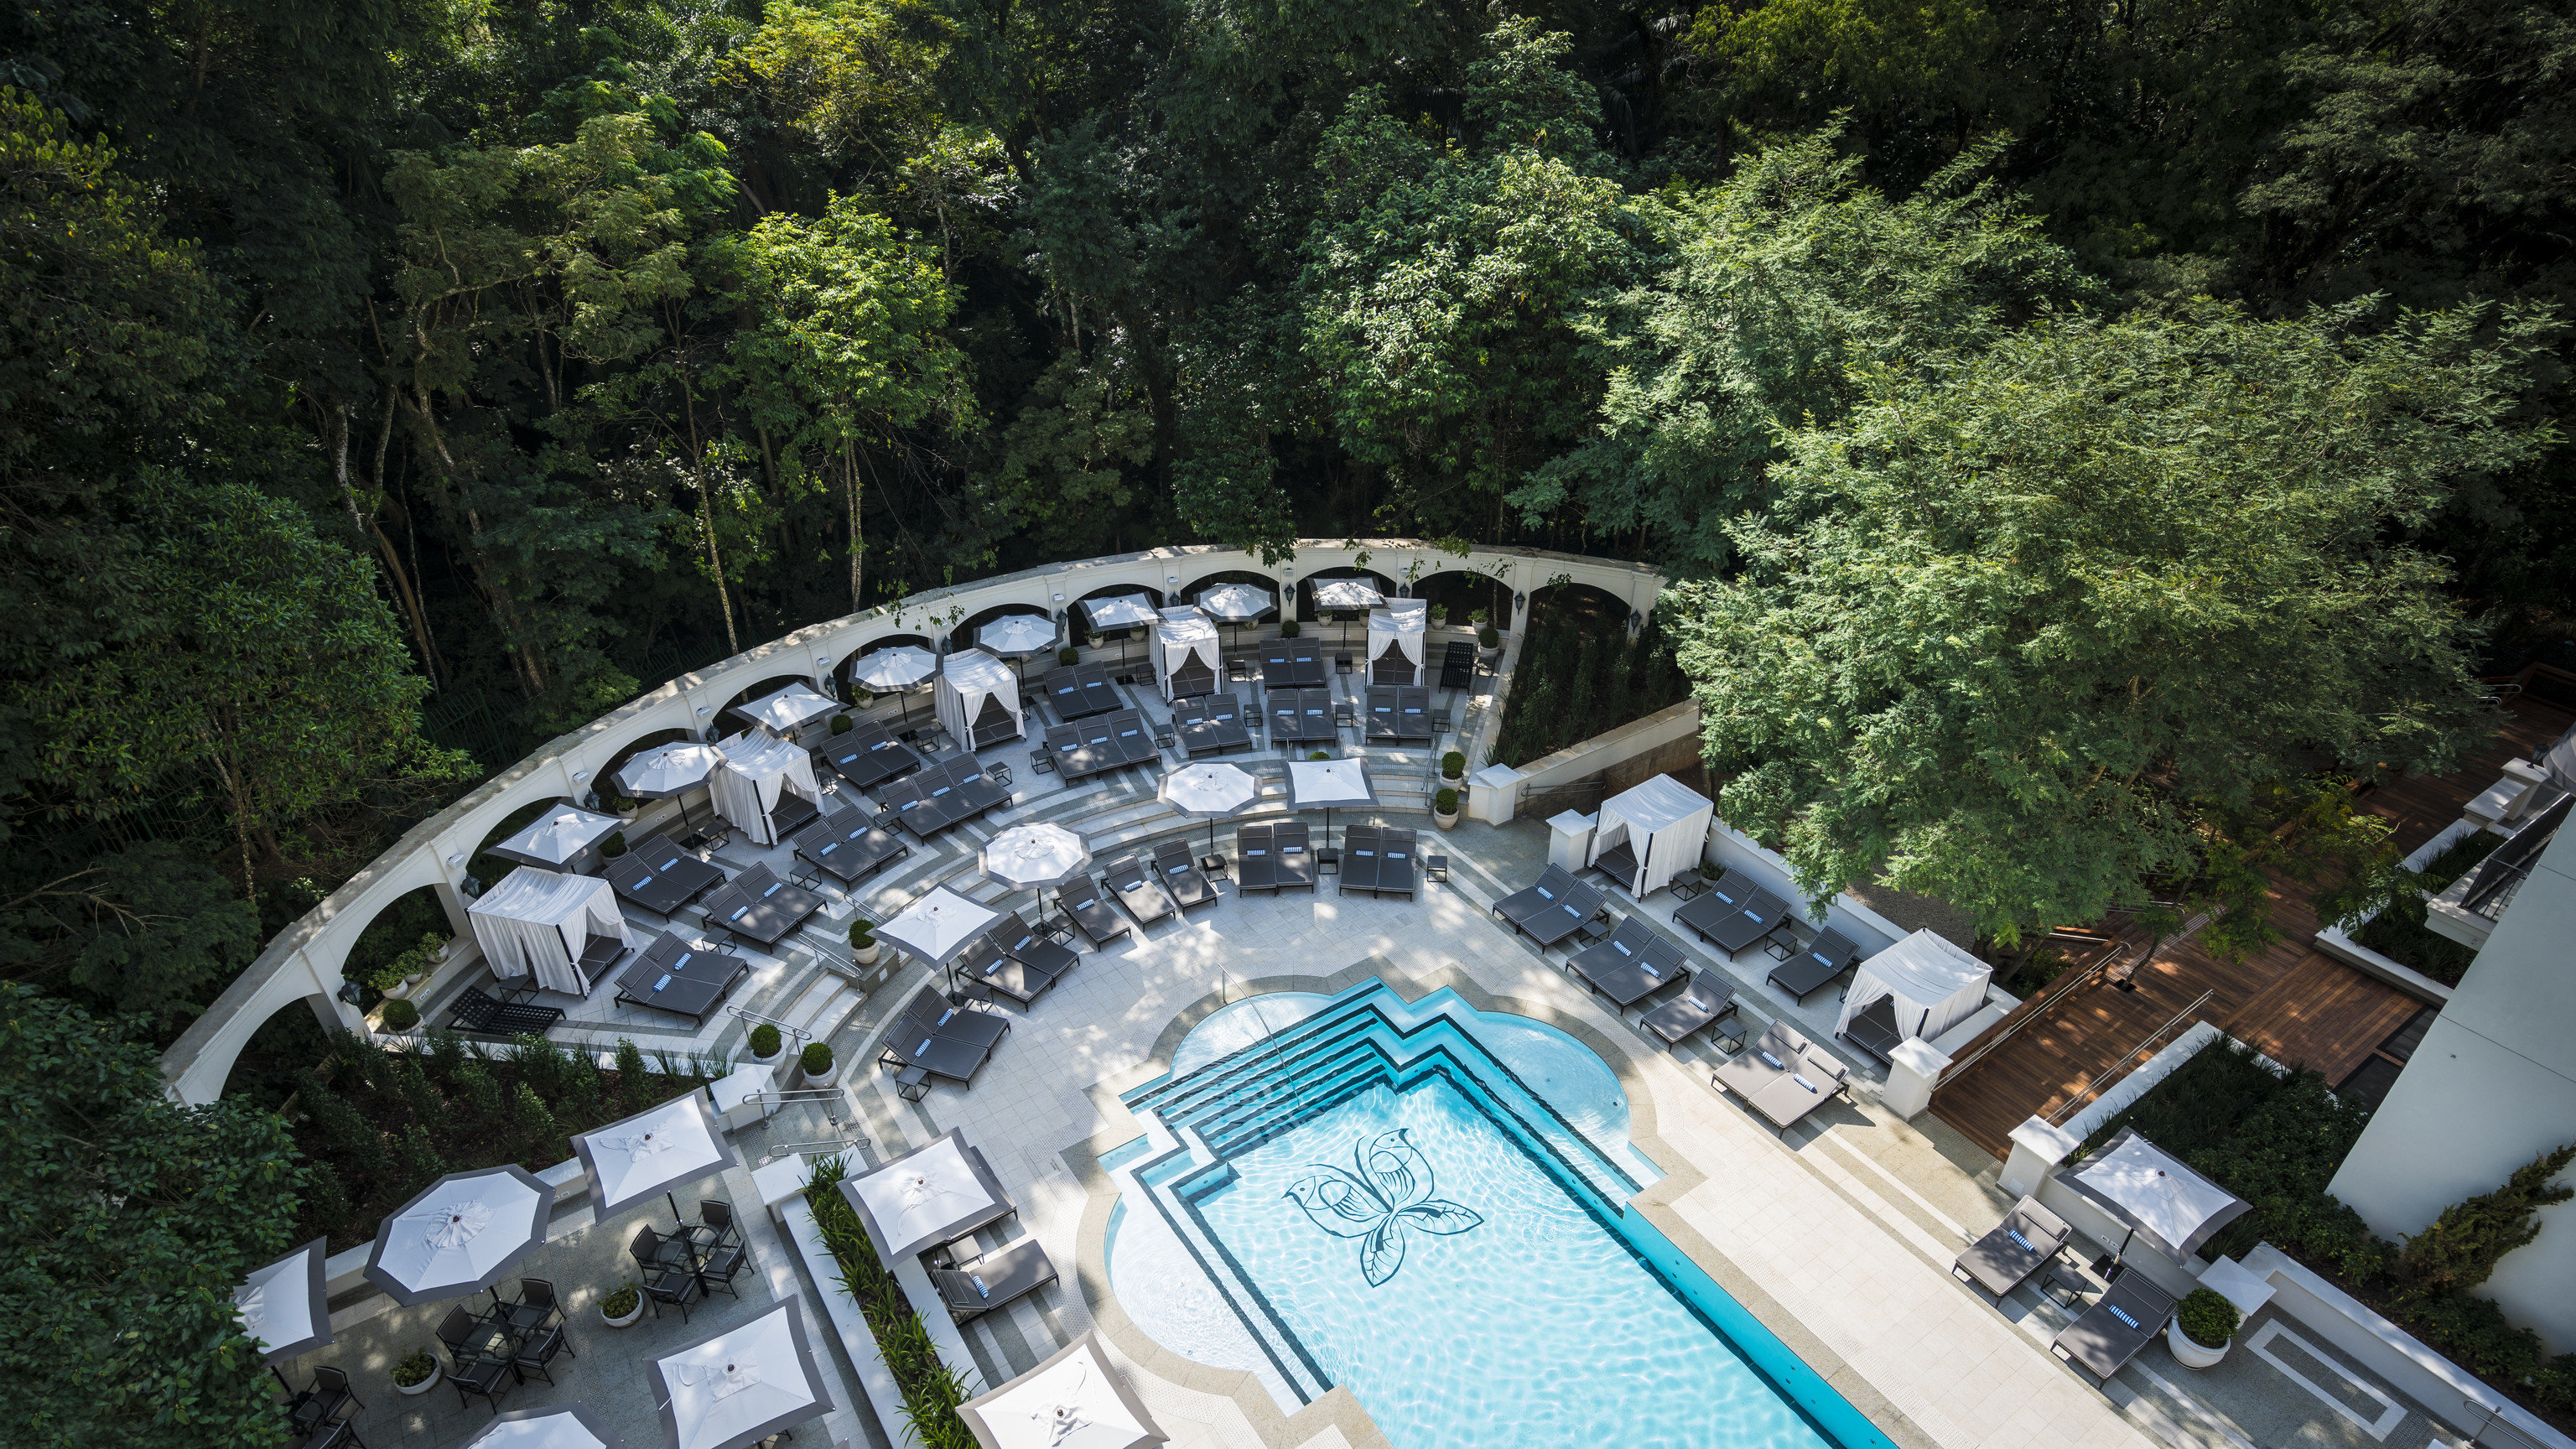 Architecture Fall Travel Hotels Luxury Travel News Trip Ideas tree outdoor swimming pool leisure water resort town estate Resort recreation Forest wood wooded